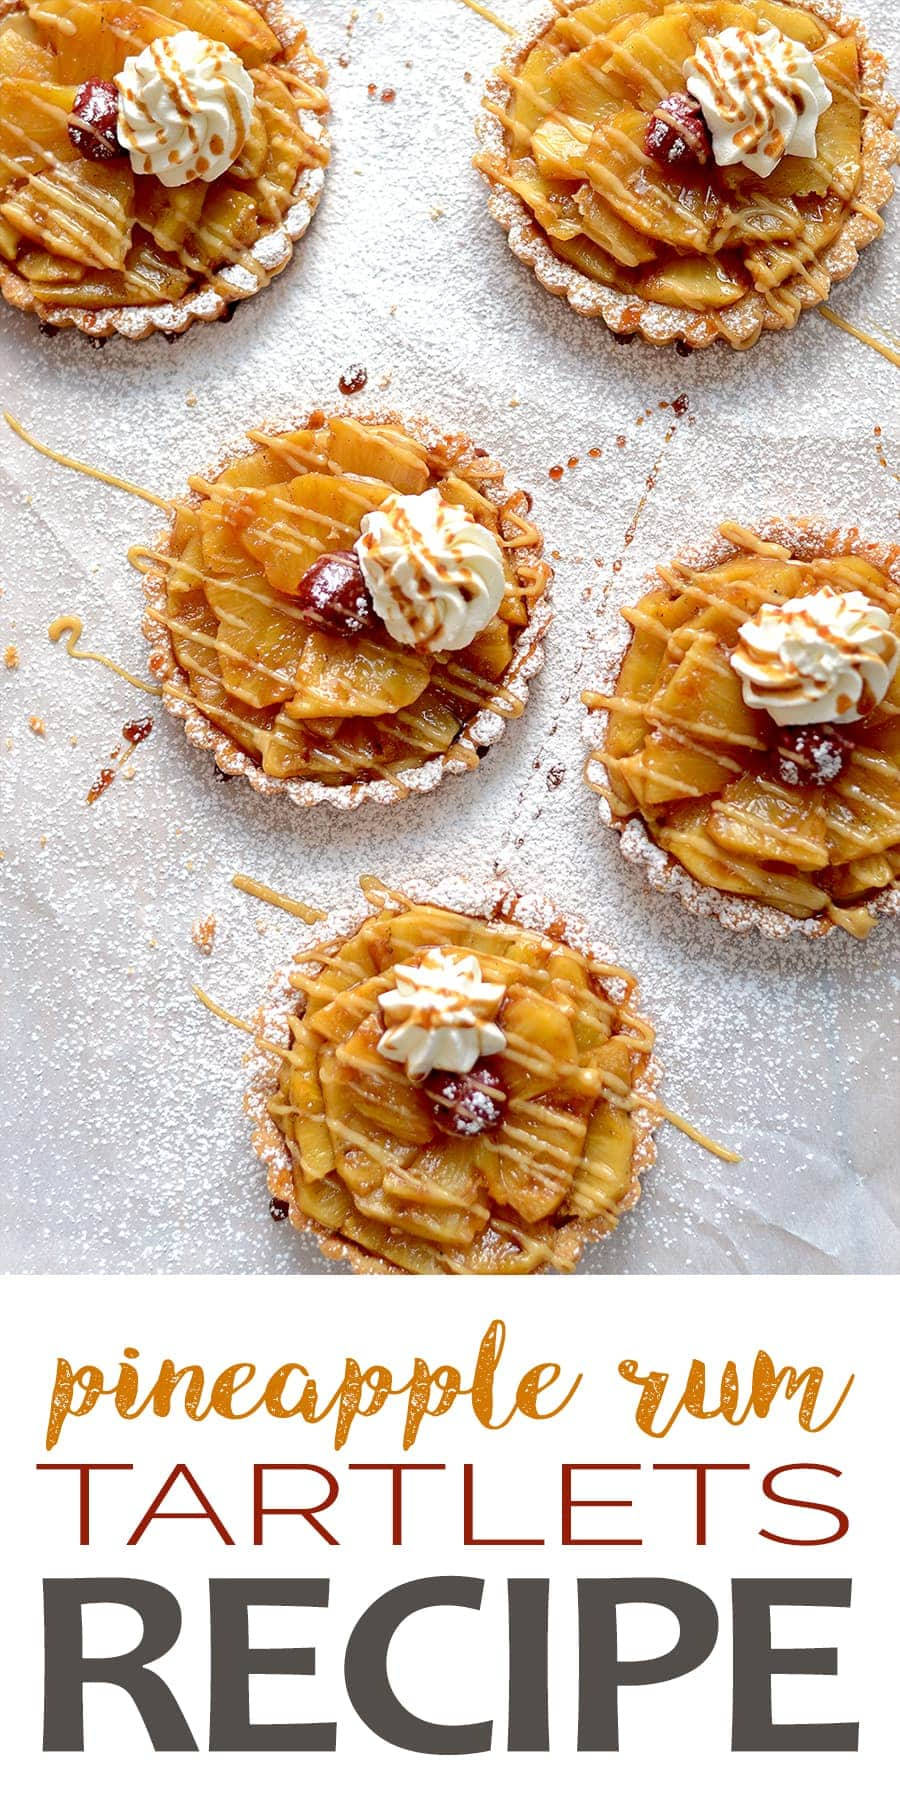 Pineapple Run Tartlets Pin - Pineapple Rum Tartlets